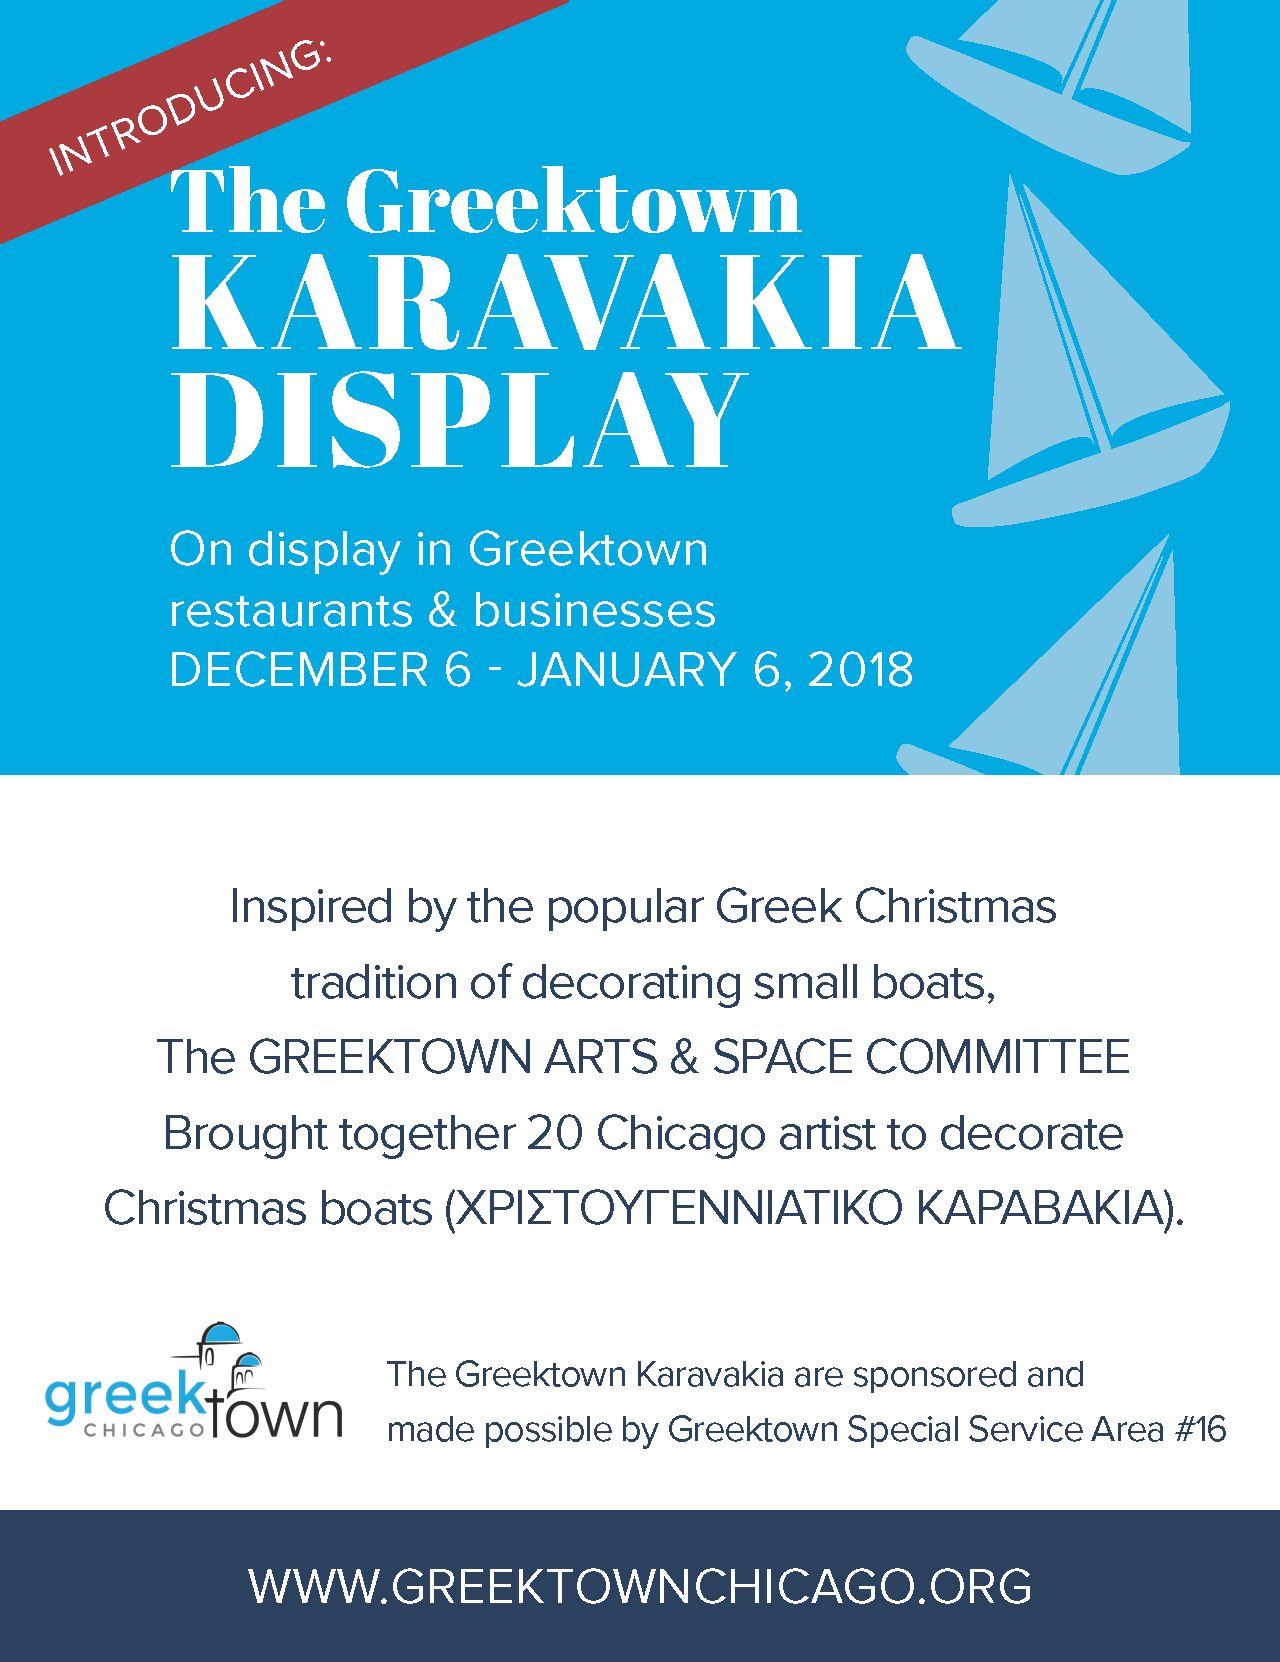 2nd Annual Greektown Christmas Ceremony – December 9th, 2017 – 5 PM